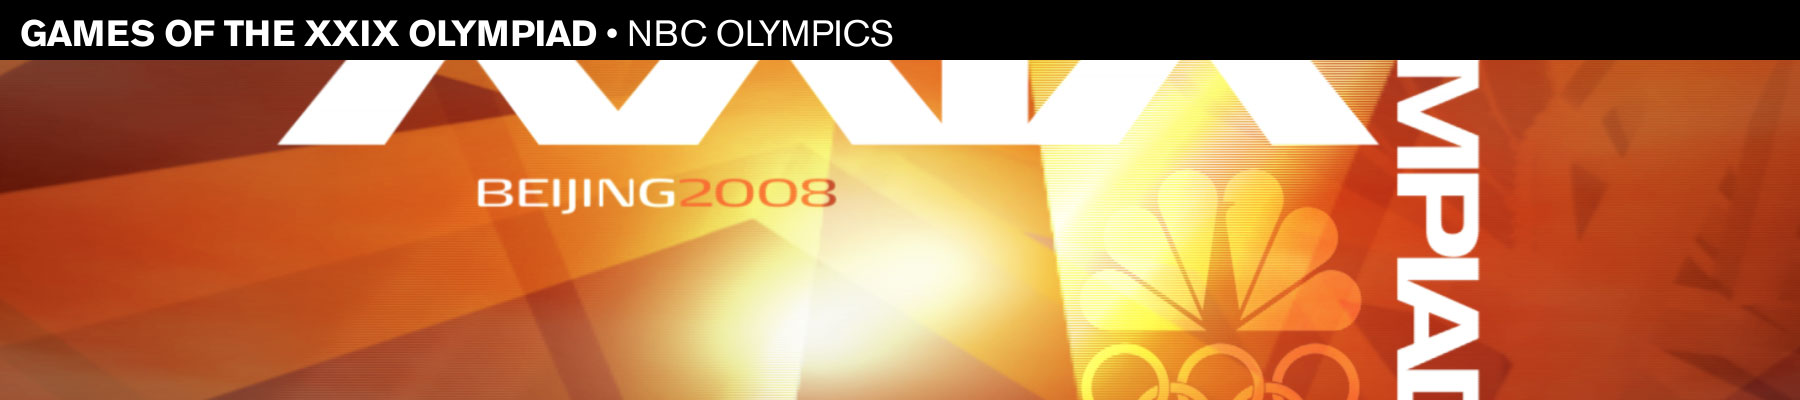 Games of the XXIX Olympiad  NBC Olympics